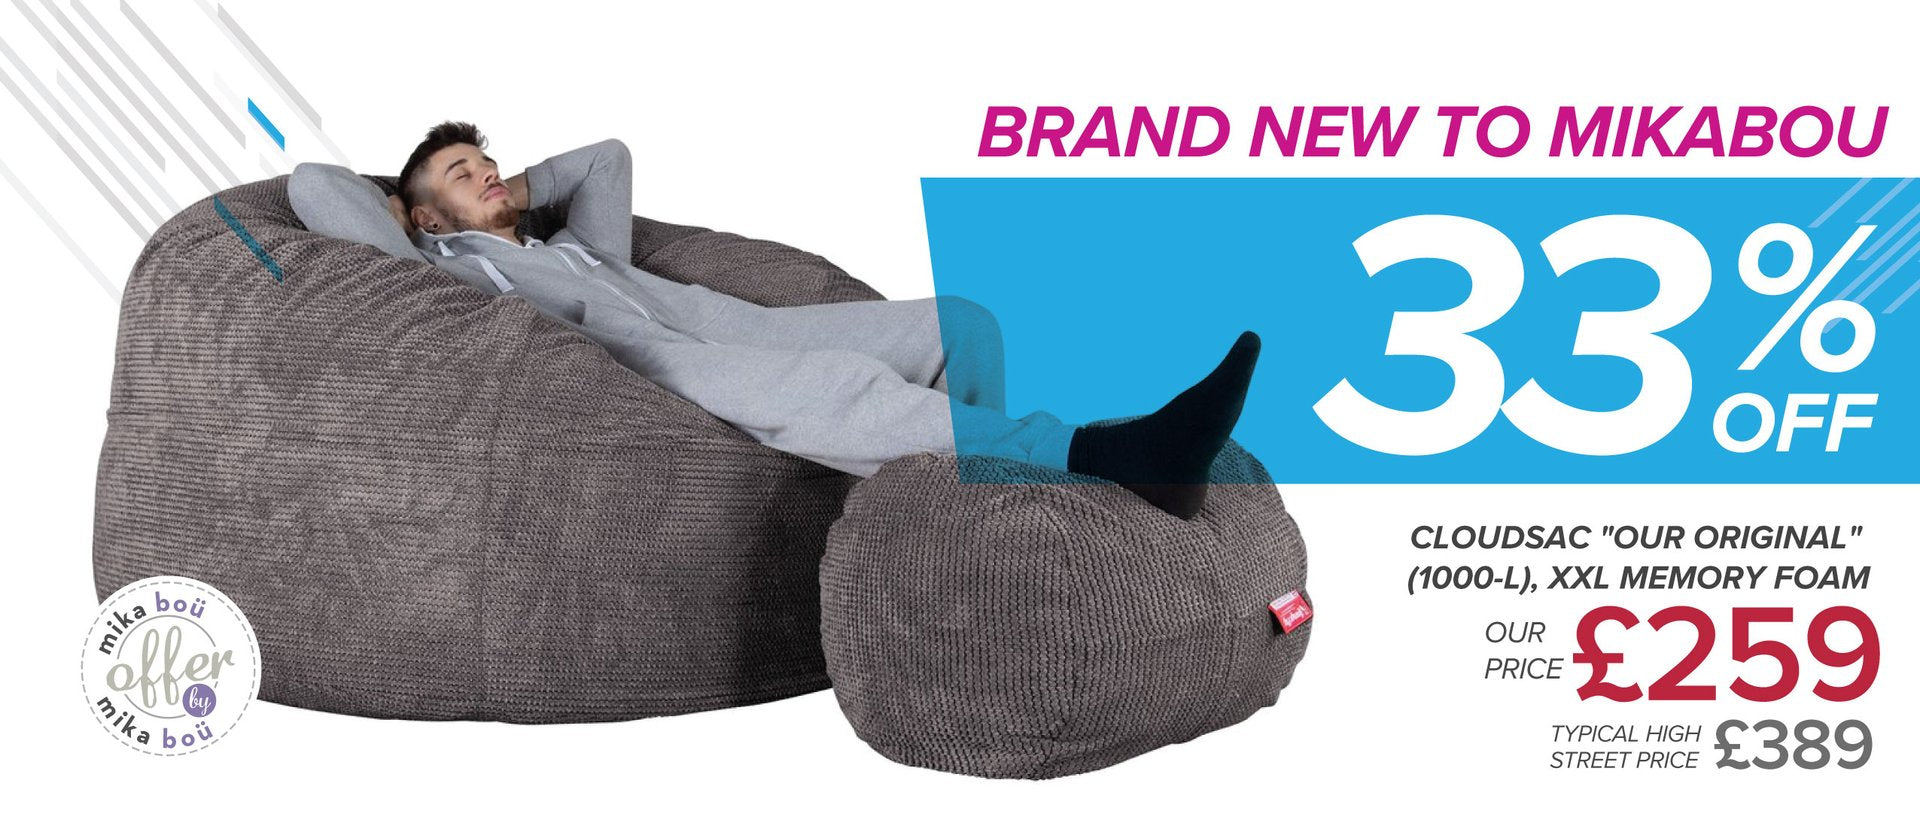 80ba8dd90a MikaBoü - High Quality Bean Bags   Technologically Advanced Pet Beds ...